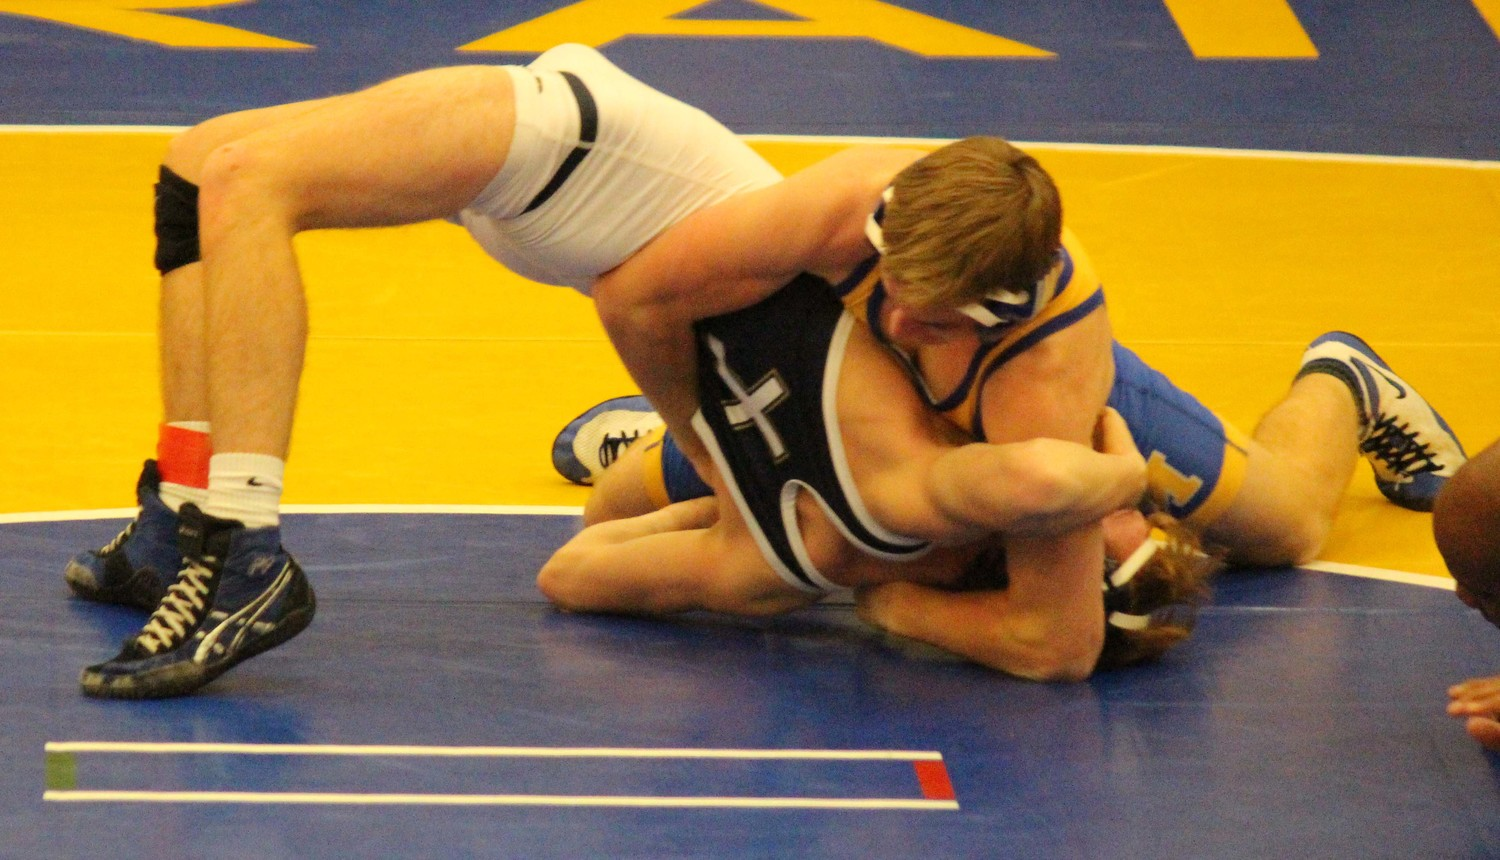 Joey Spear recorded a first-period pin at 138 pounds vs. Bishop McDevitt.